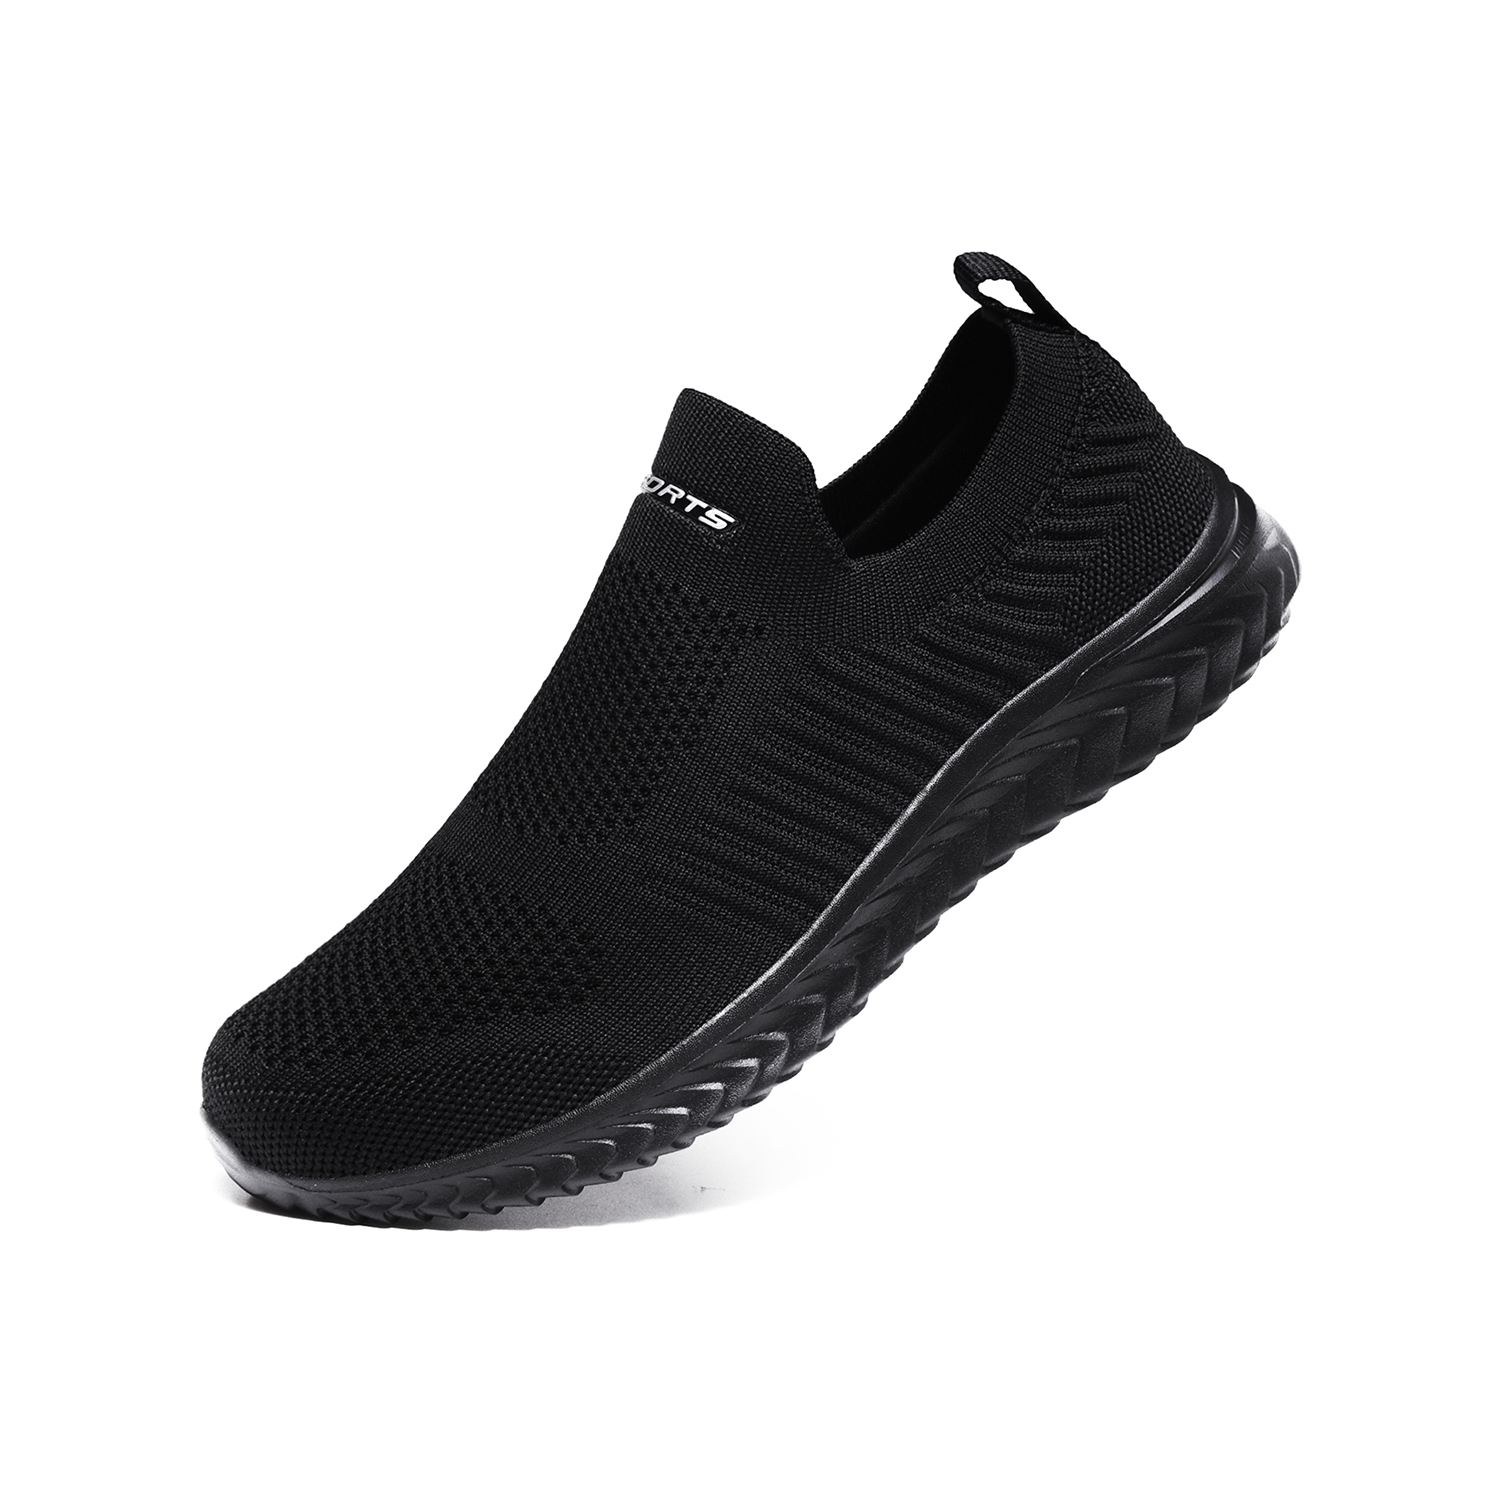 Shoes Men Sneakers Men Comfortable Slip On Casual Lazy Shoes Lightweight Couple Sock Sneakers Footwear